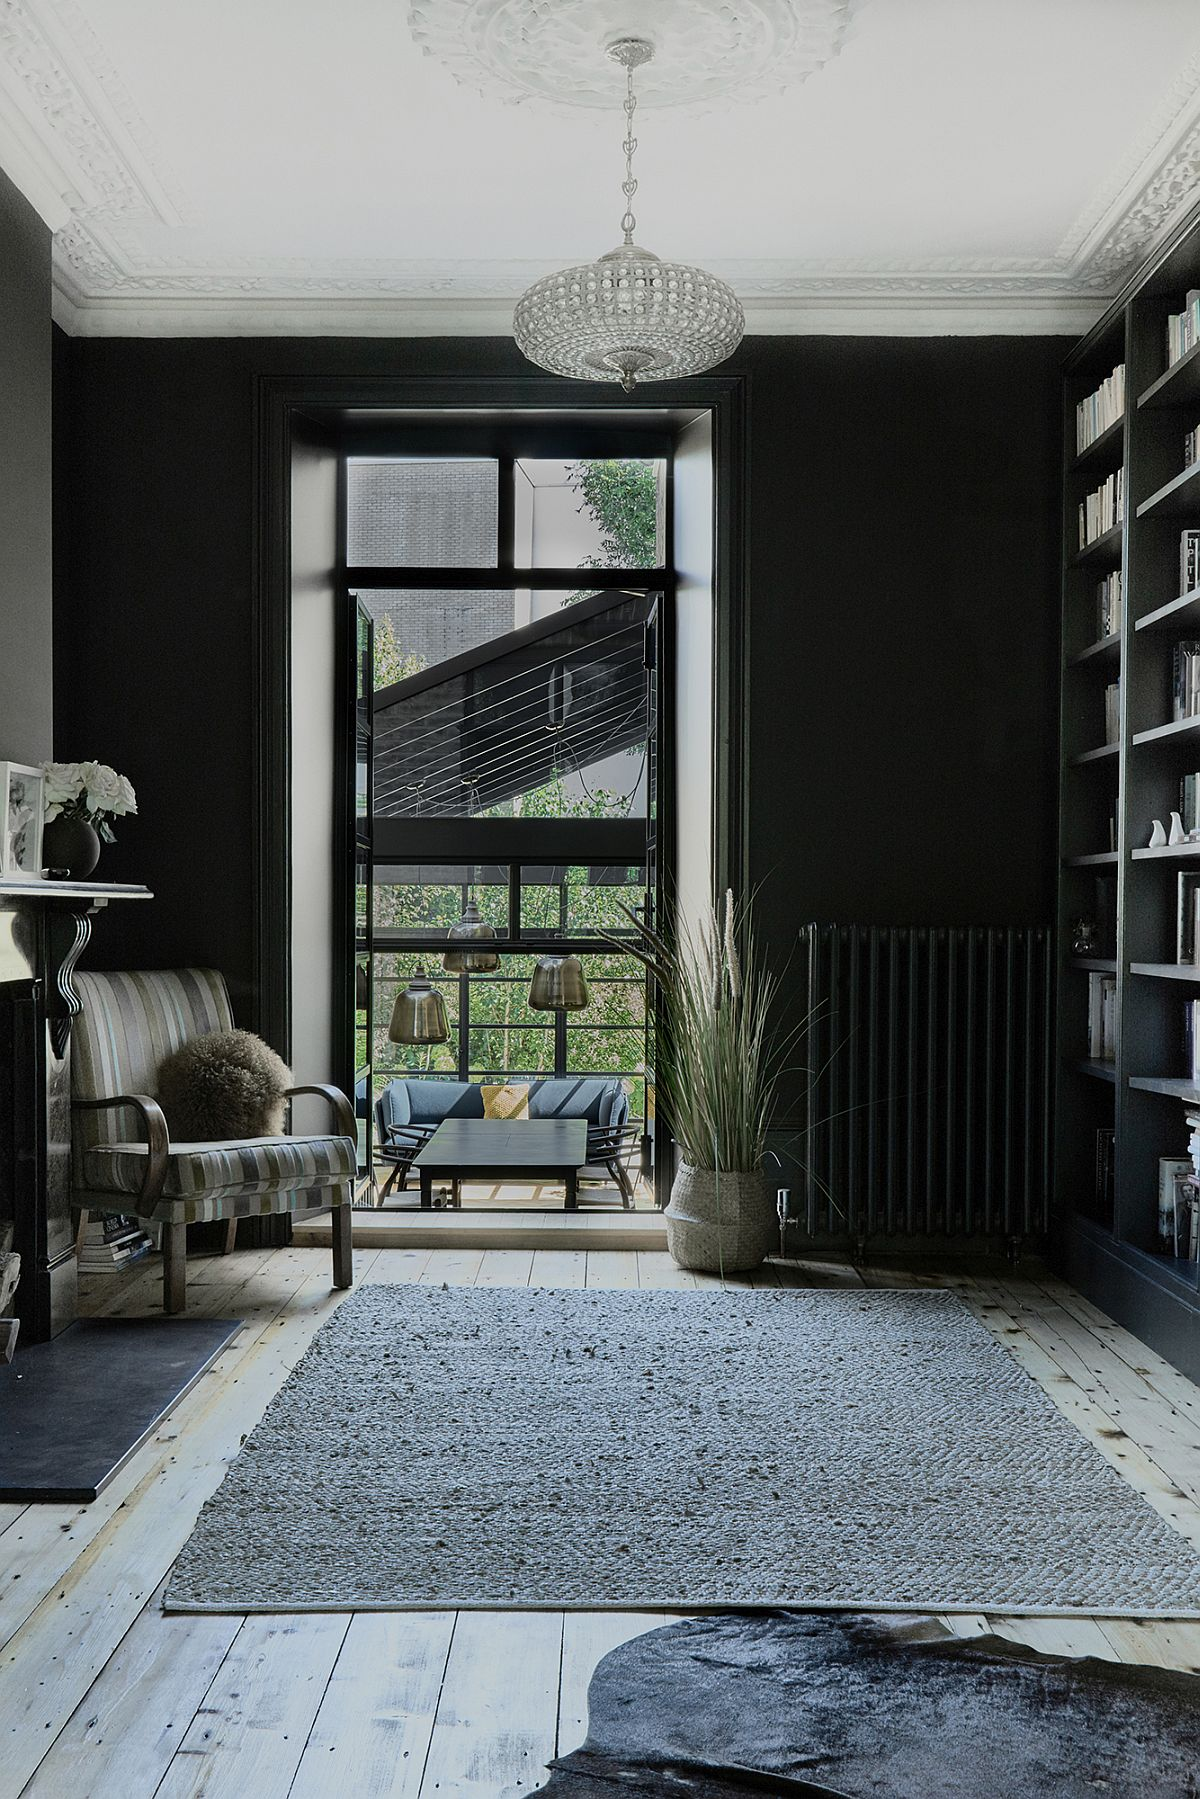 Black is the color of choice inside the modern London home extension